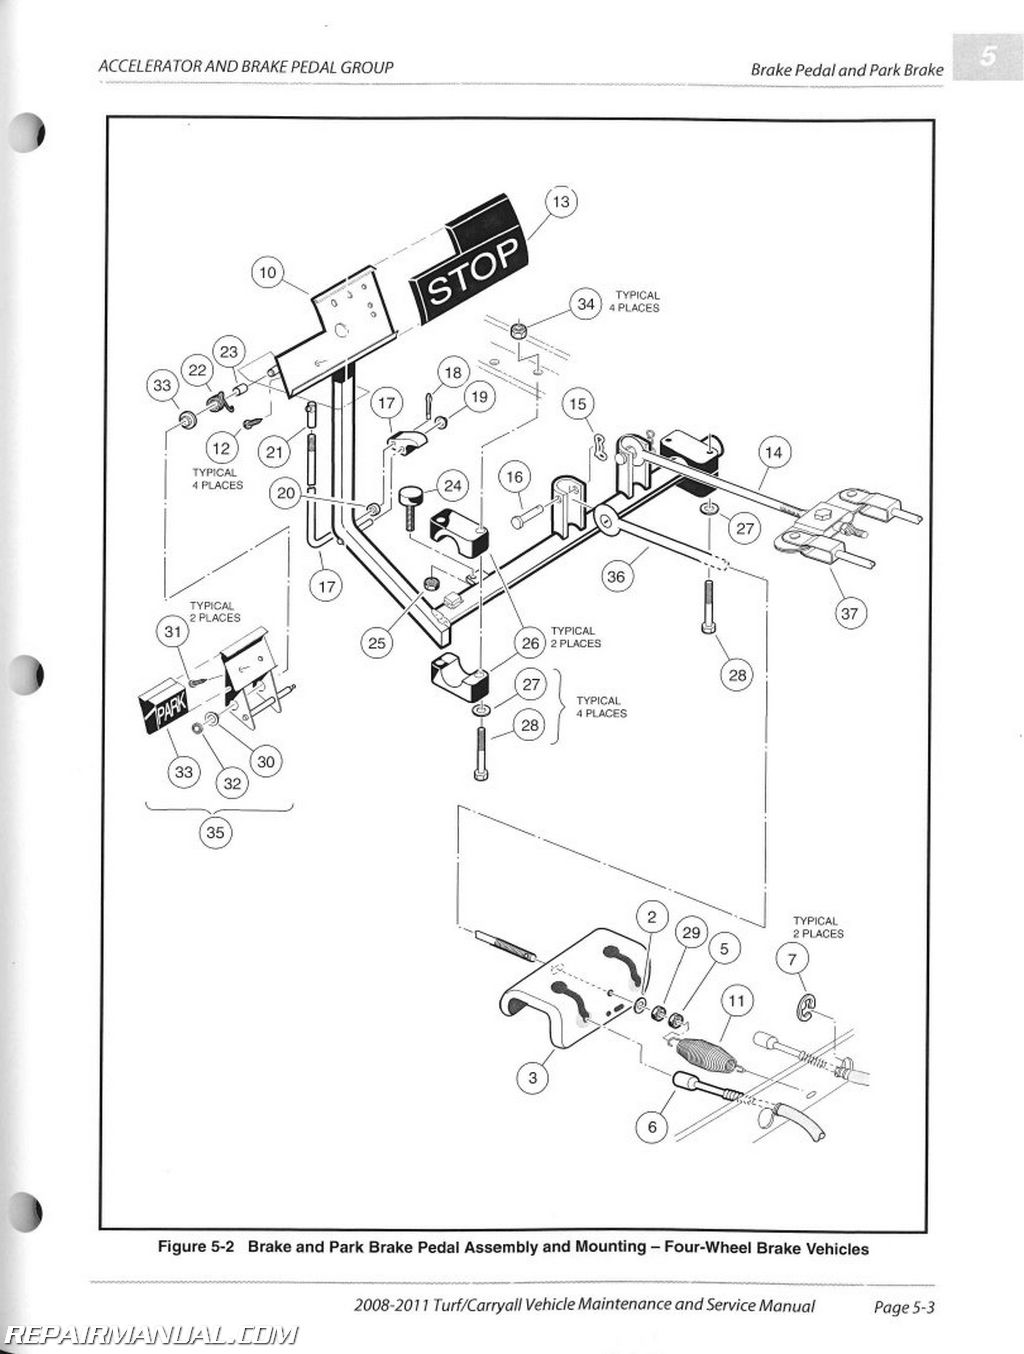 carryall wiring diagram 2008-2011 club car turf, carryall turf 1, turf 2, turf 6 ... club car carryall 6 wiring diagram